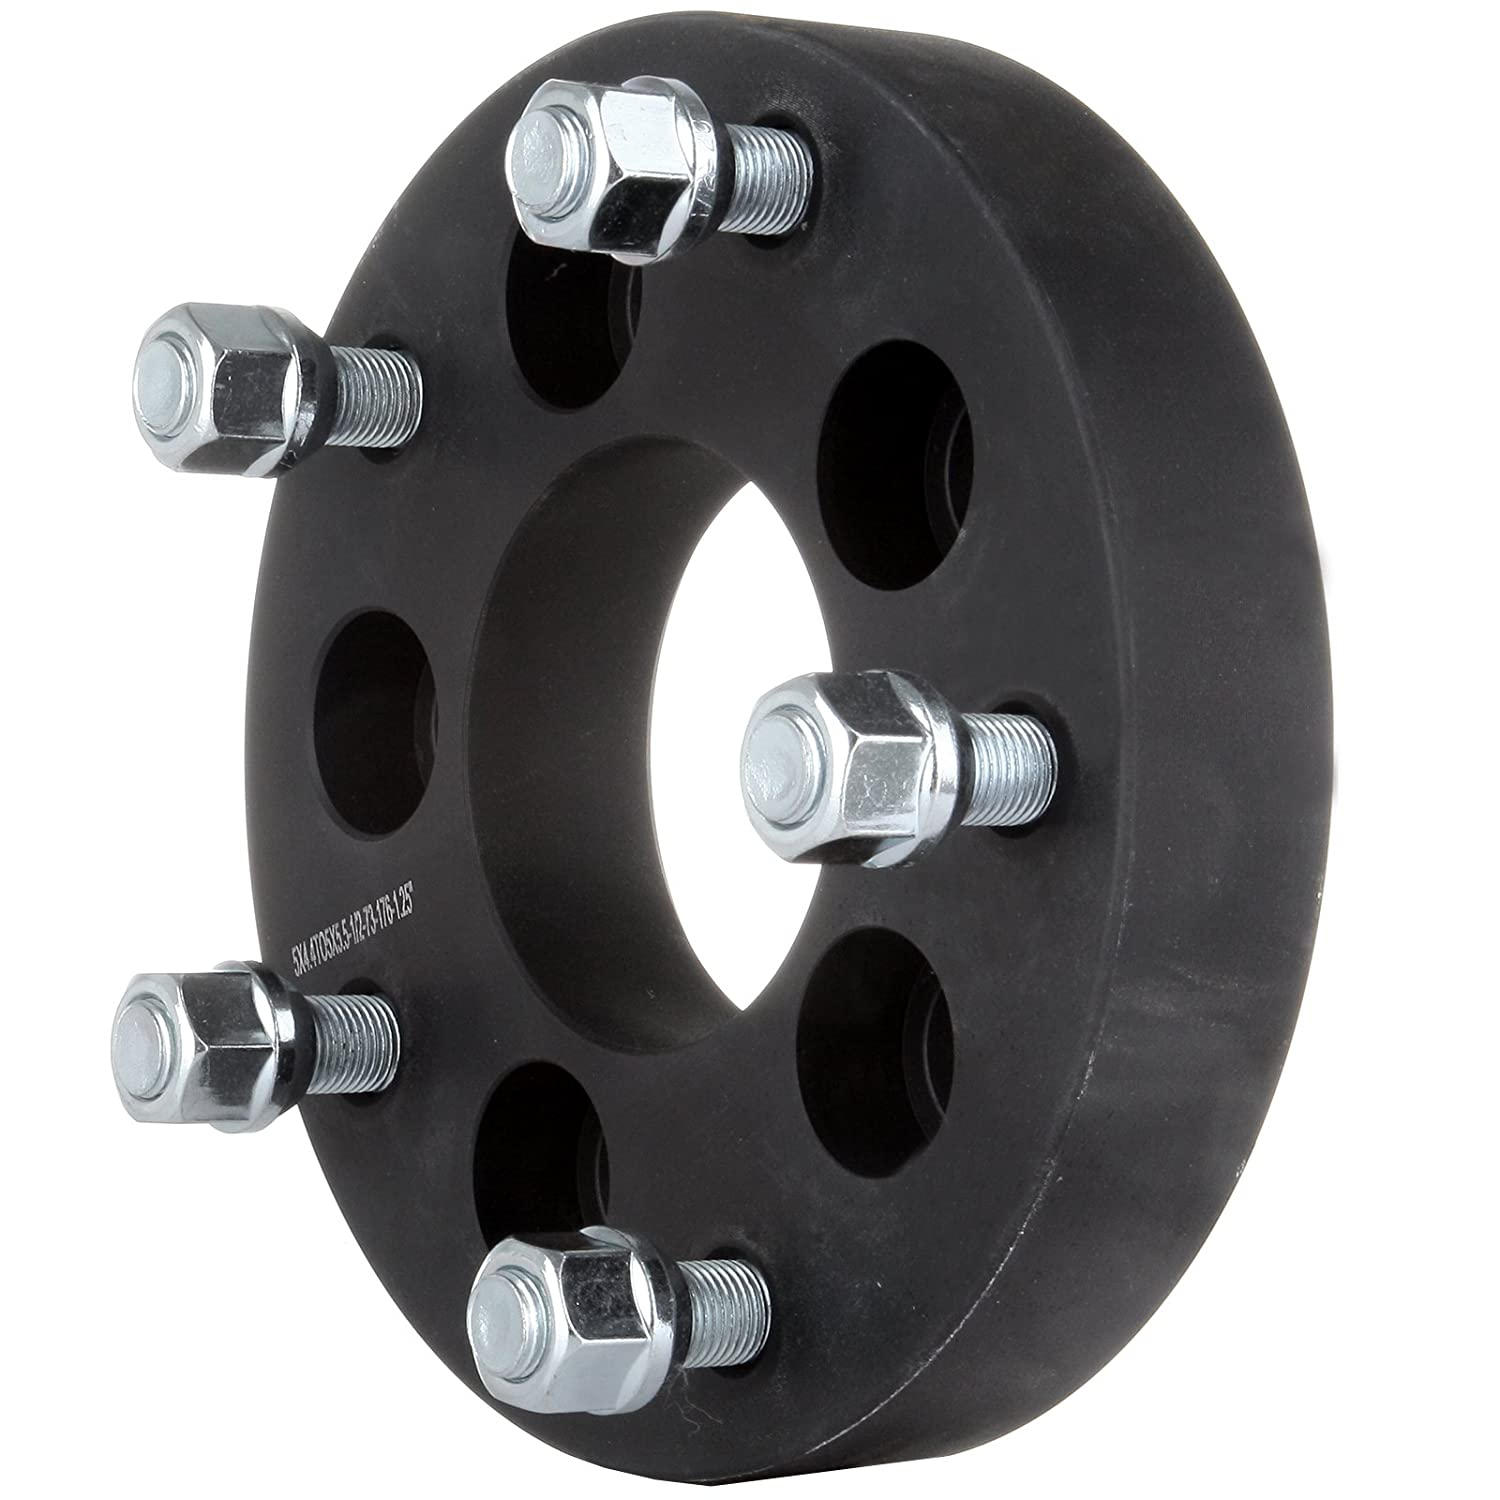 1//2 Studs 1.25 5x4.5 to 5x5.5 Black Wheel Adapters Scitoo Set of 4 5Lug Spacers For 1996-2006 Mercury Mountaineer Mazda B4000 Jeep Wrangler Ford Mustang Crown Victoria